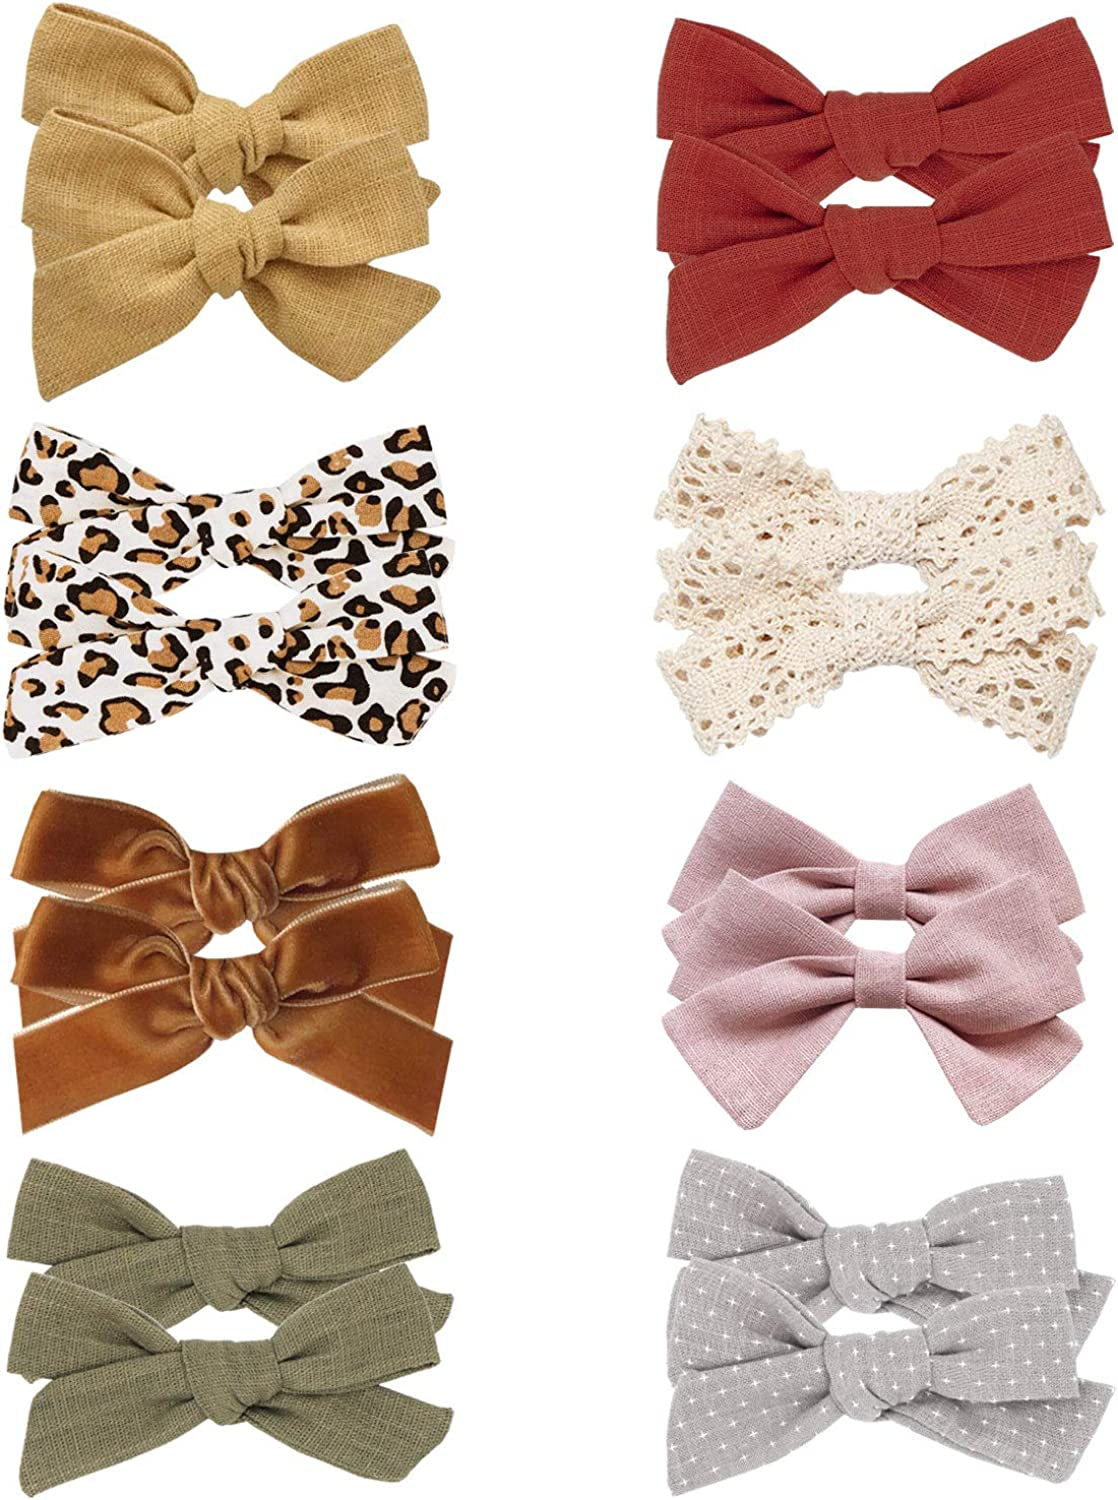 Details about  /20 Colors New Alligator Clips Girls Bow Ribbon Kids Sides Accessories cv46